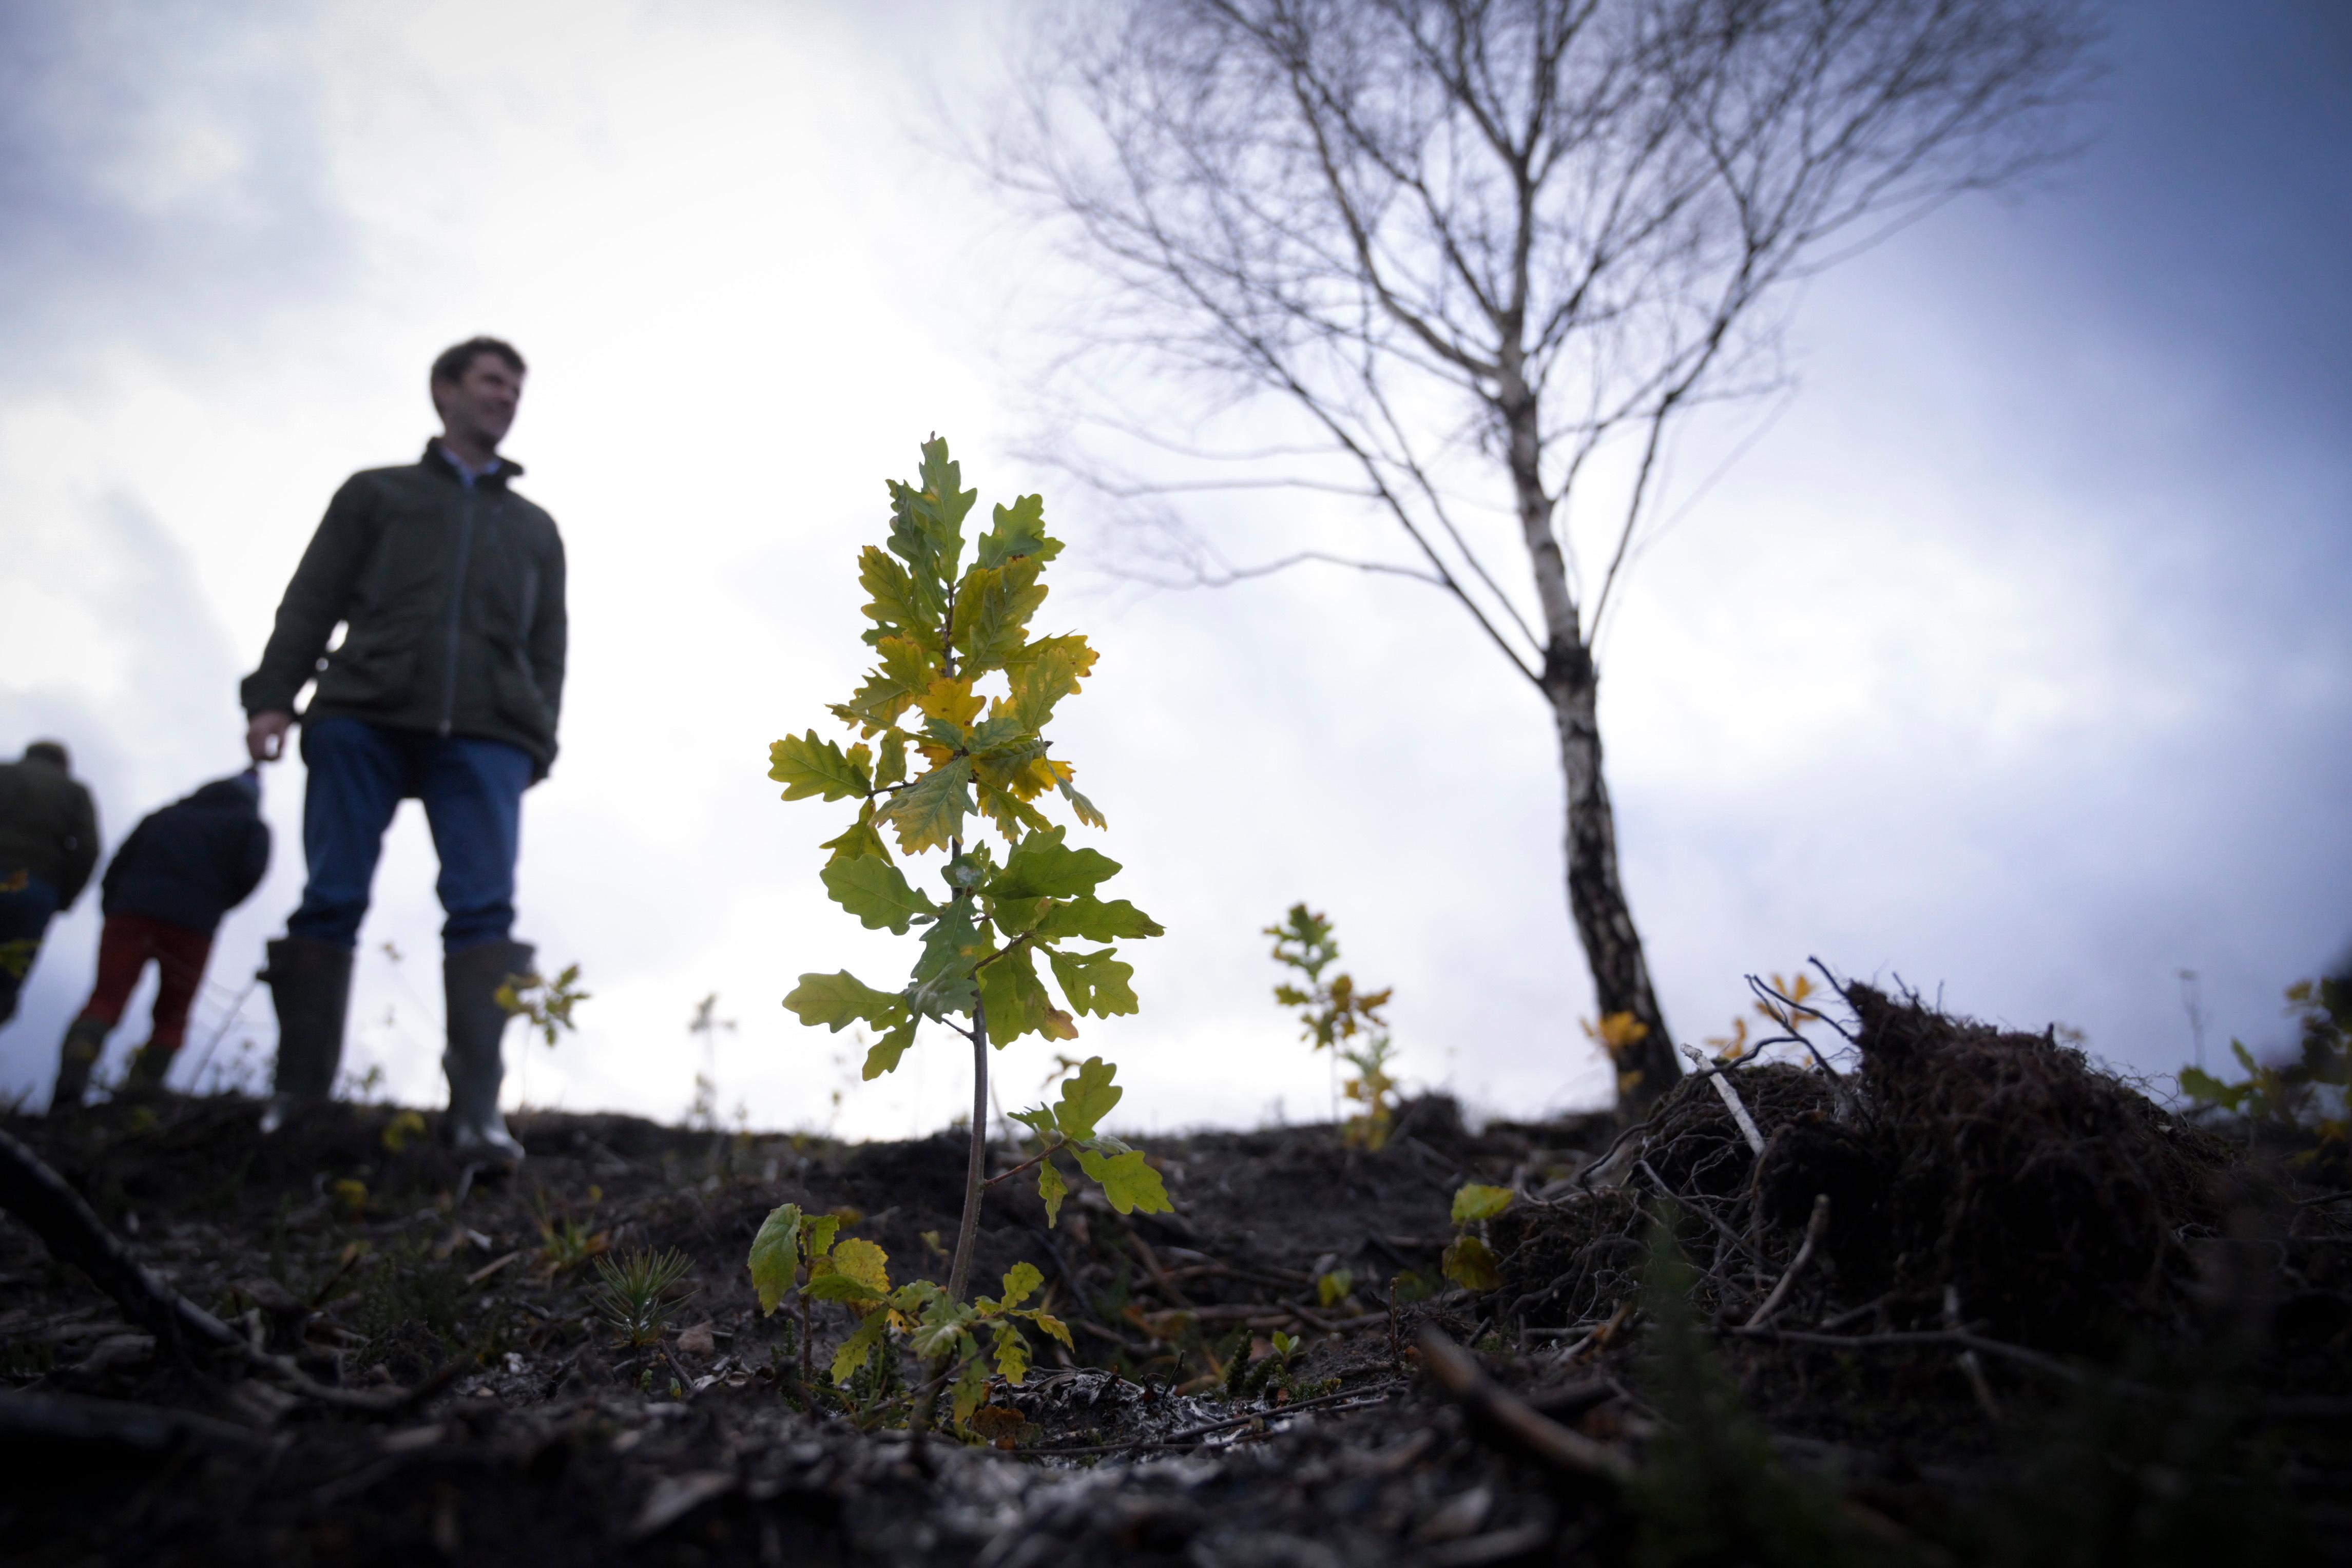 Reforesting the UK: 'Trees are the ultimate long-term project'